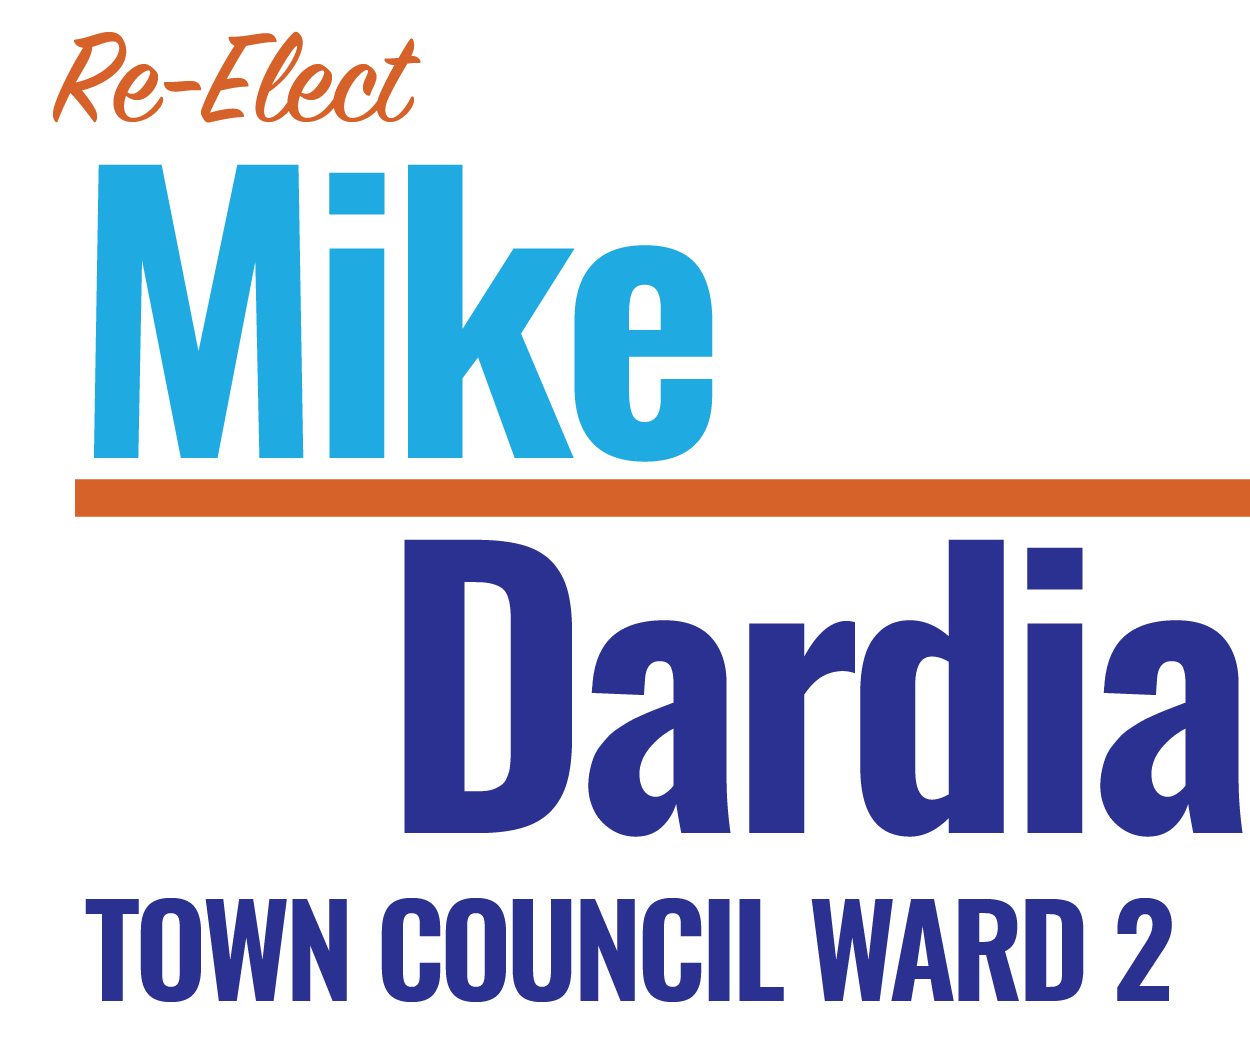 Re-elect Mike Dardia for Ward 2